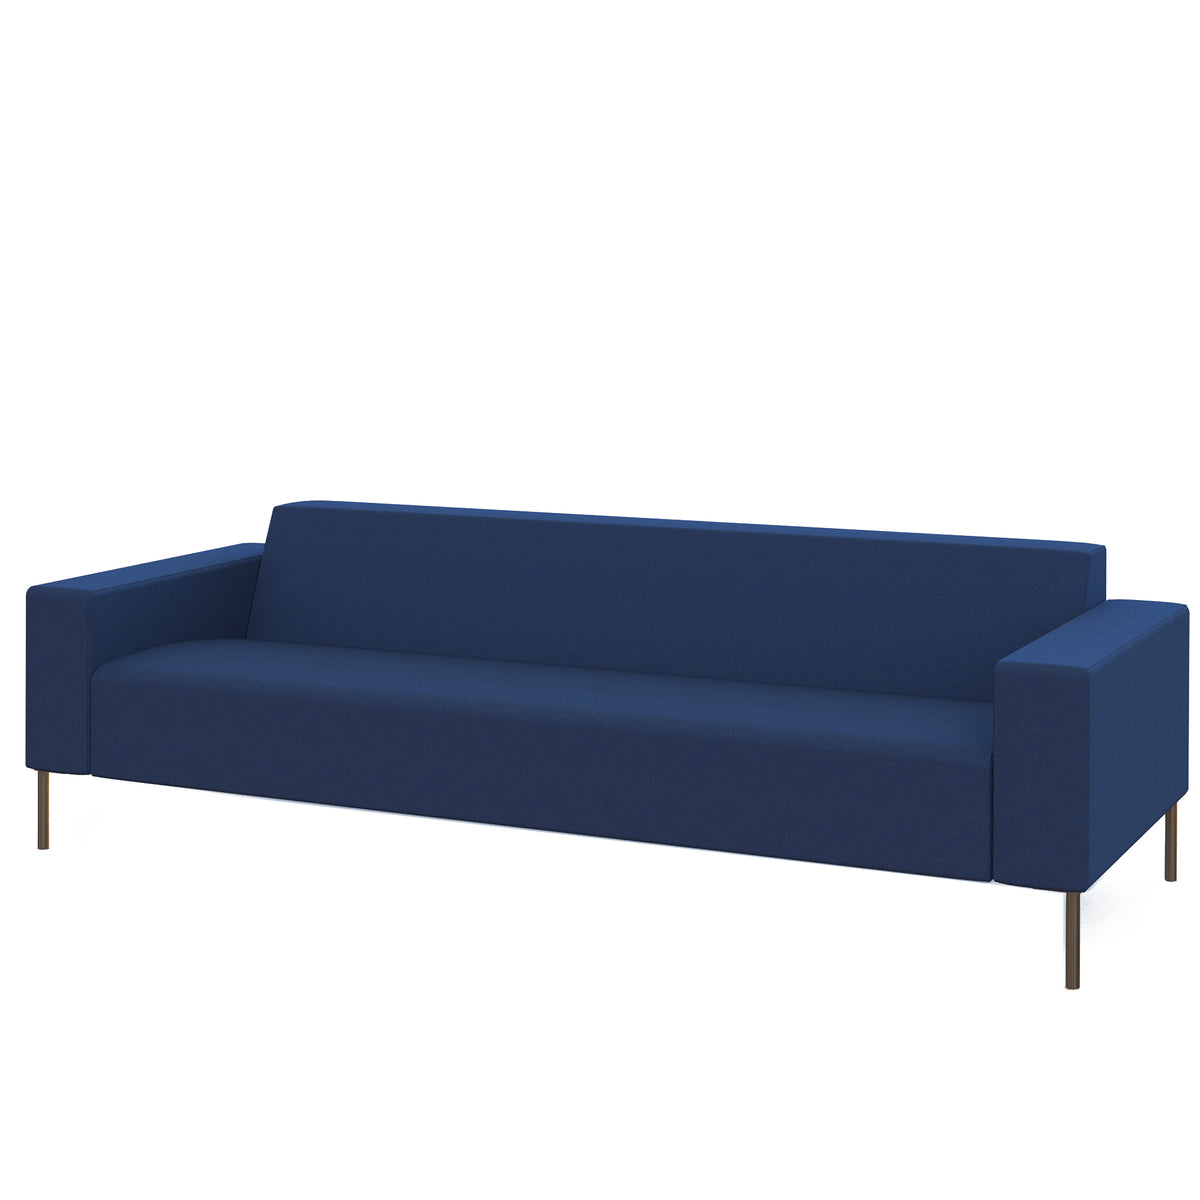 Hitch Mylius HM18 Origin Three Seat Sofa Brushed Stainless Steel Legs Holborn